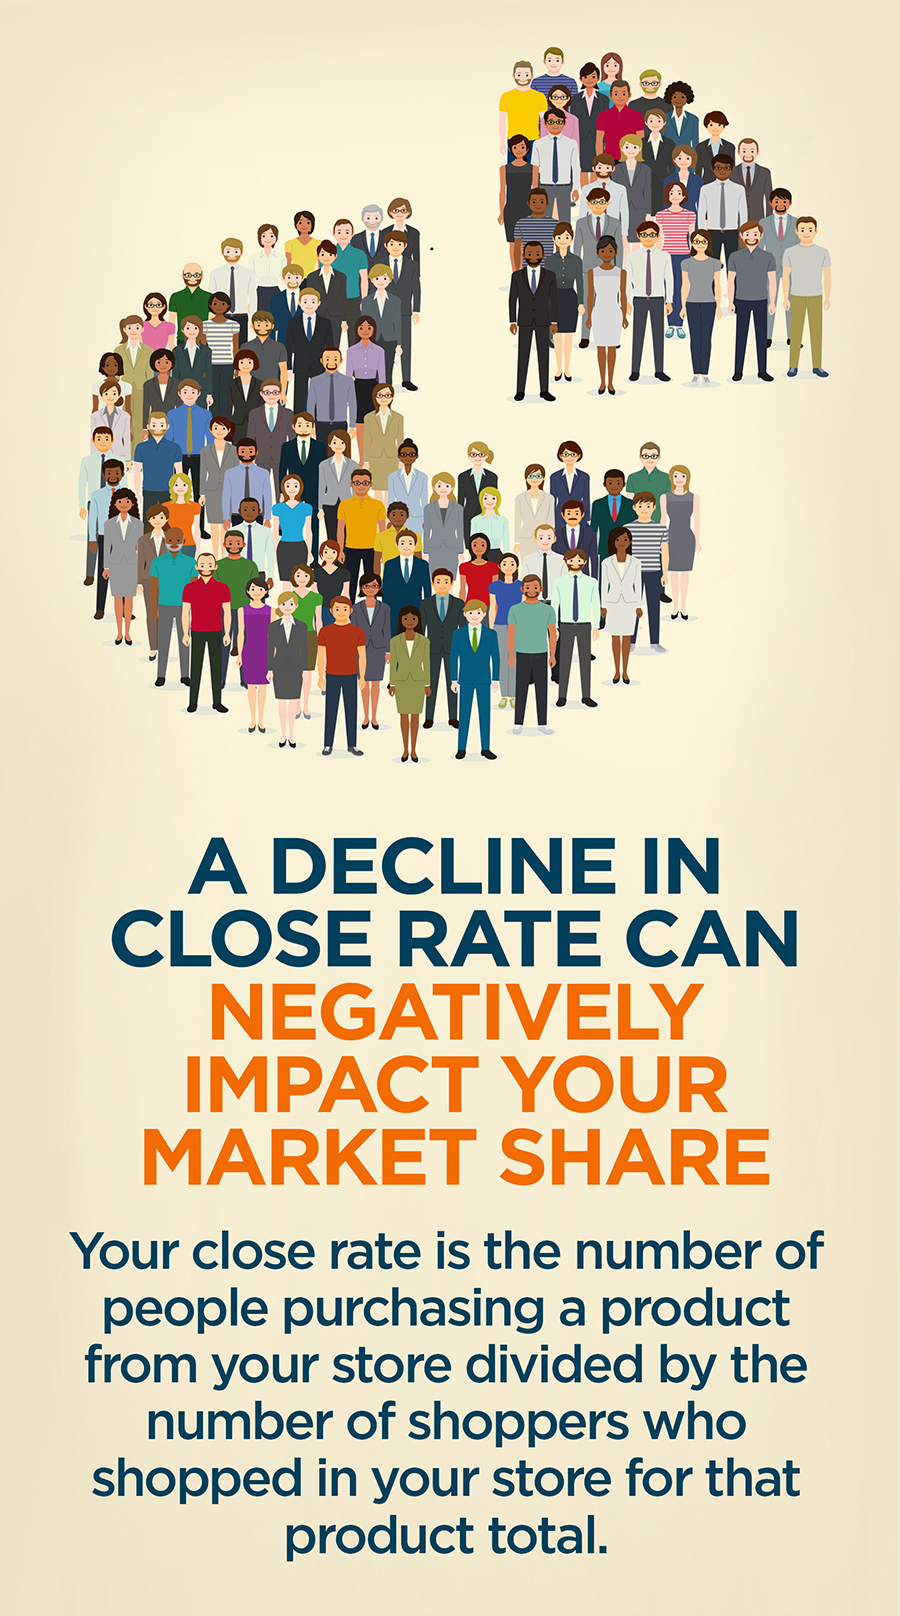 A decline in close rate can negatively impact your market share. Your close rate is the number of people purchasing a product from your store divided by the numbe rof shoppers who shopped in your store for that product total